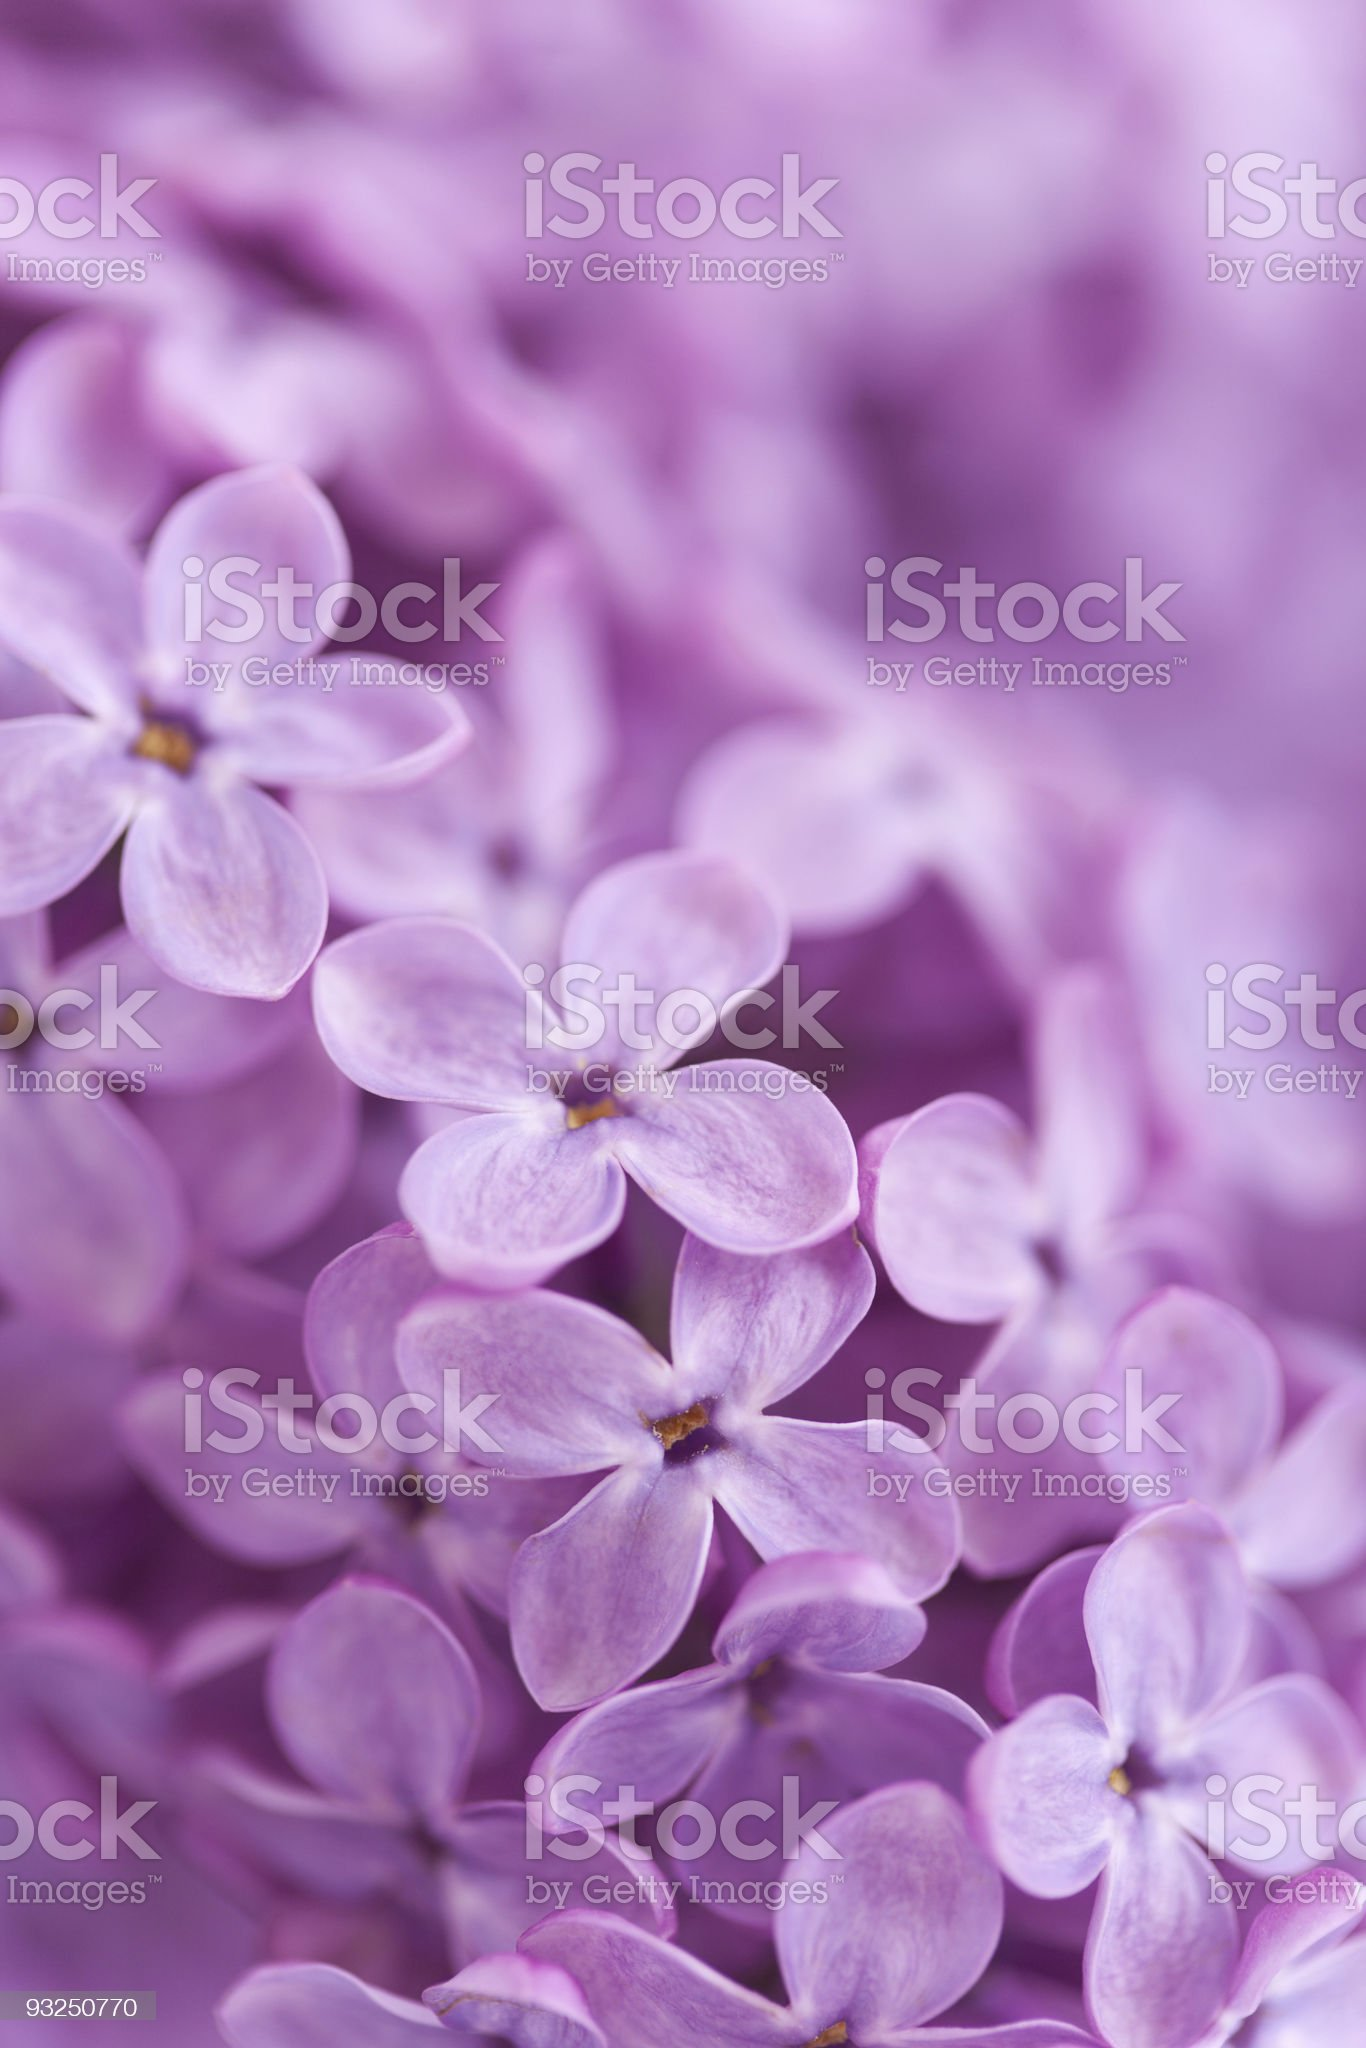 Background from fragrant lilac blossoms royalty-free stock photo